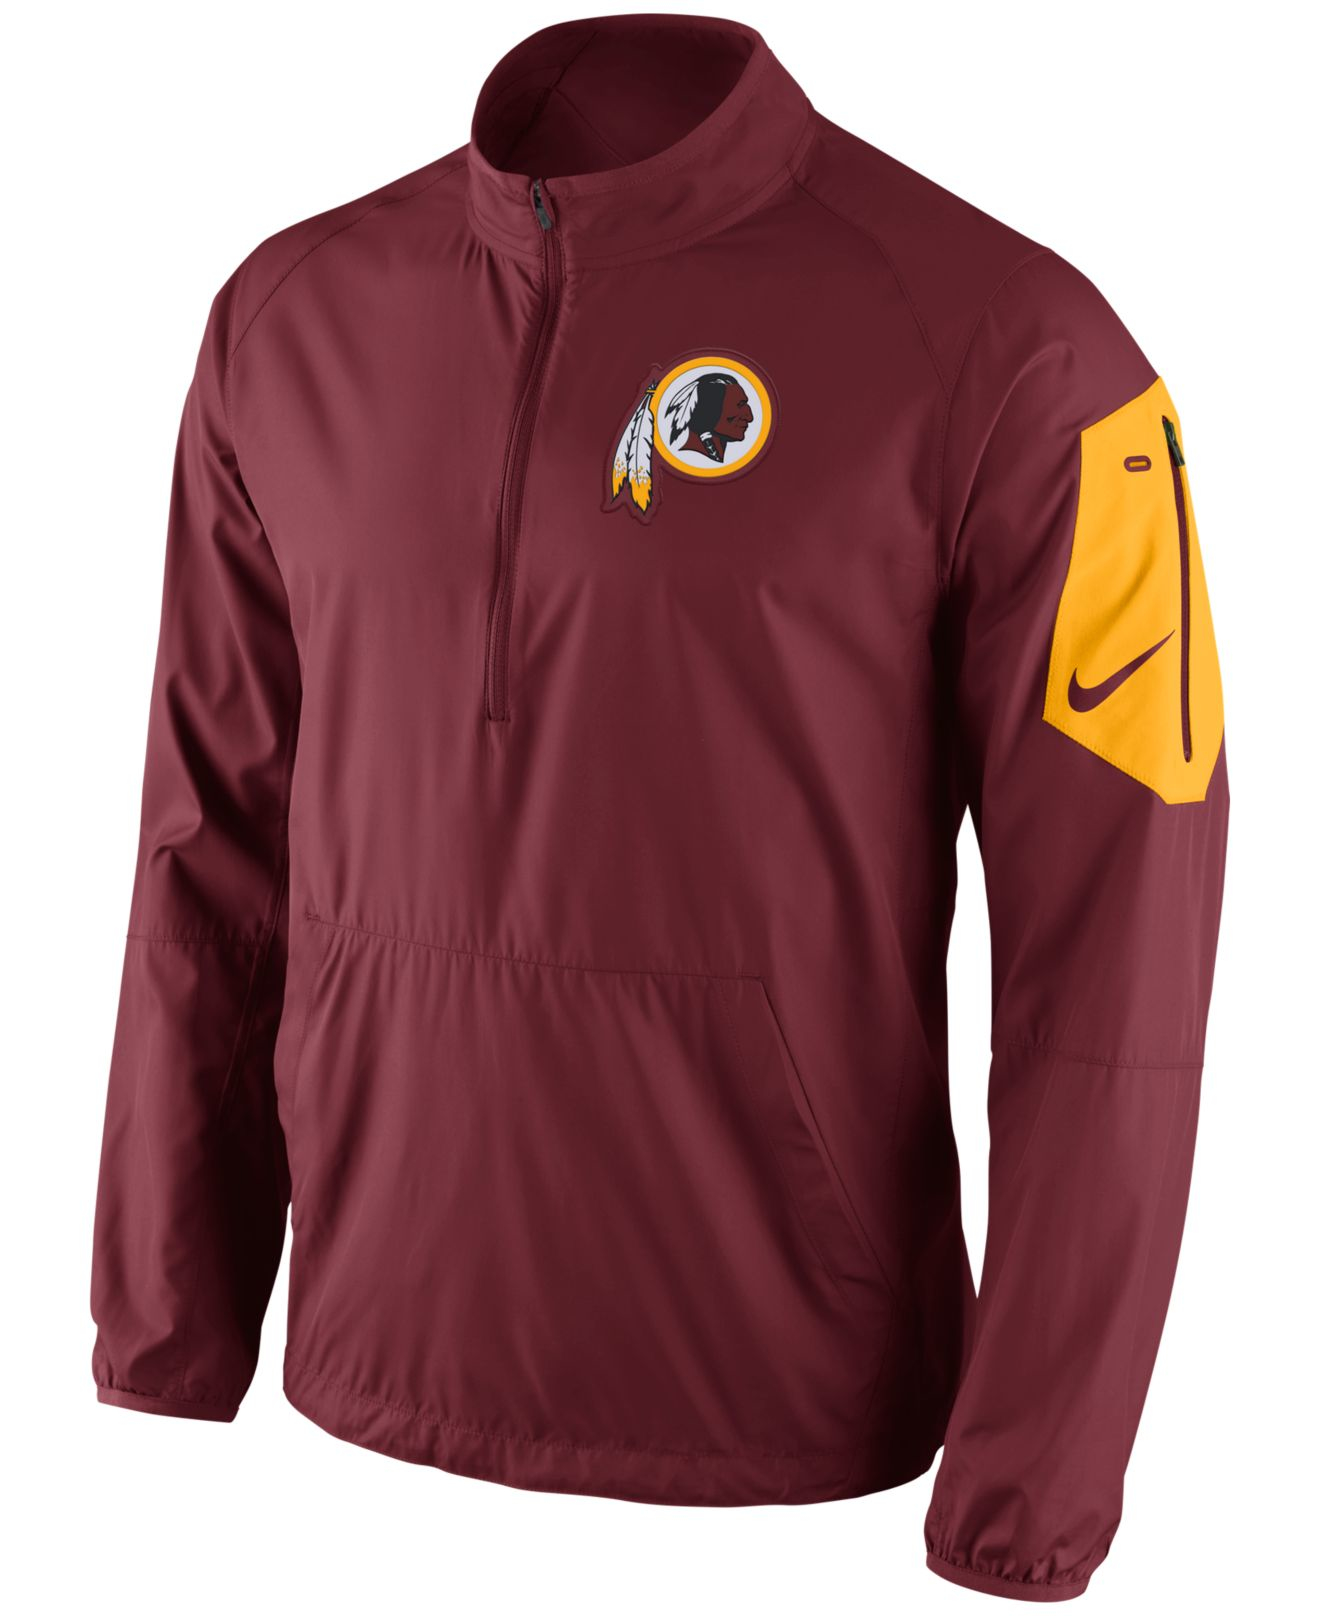 Lyst - Nike Men s Washington Redskins Lockdown Half-zip Jacket in ... d4240a400